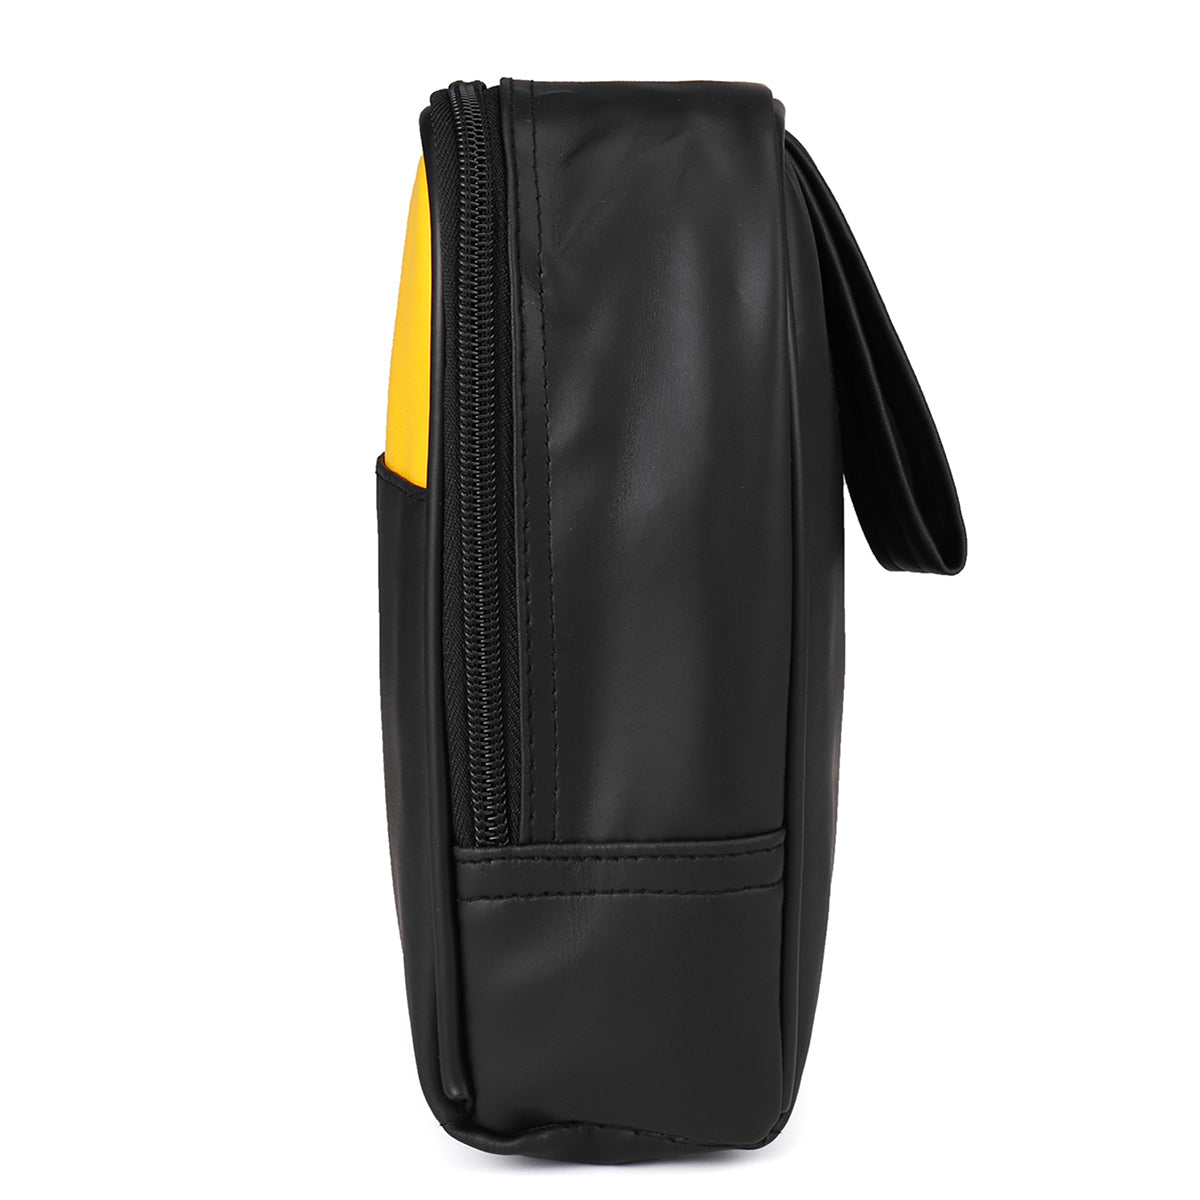 Multimeter Tool Carrying Case Bag Test Carrier Carrying Portable Tool Bag Soft for FLUKE